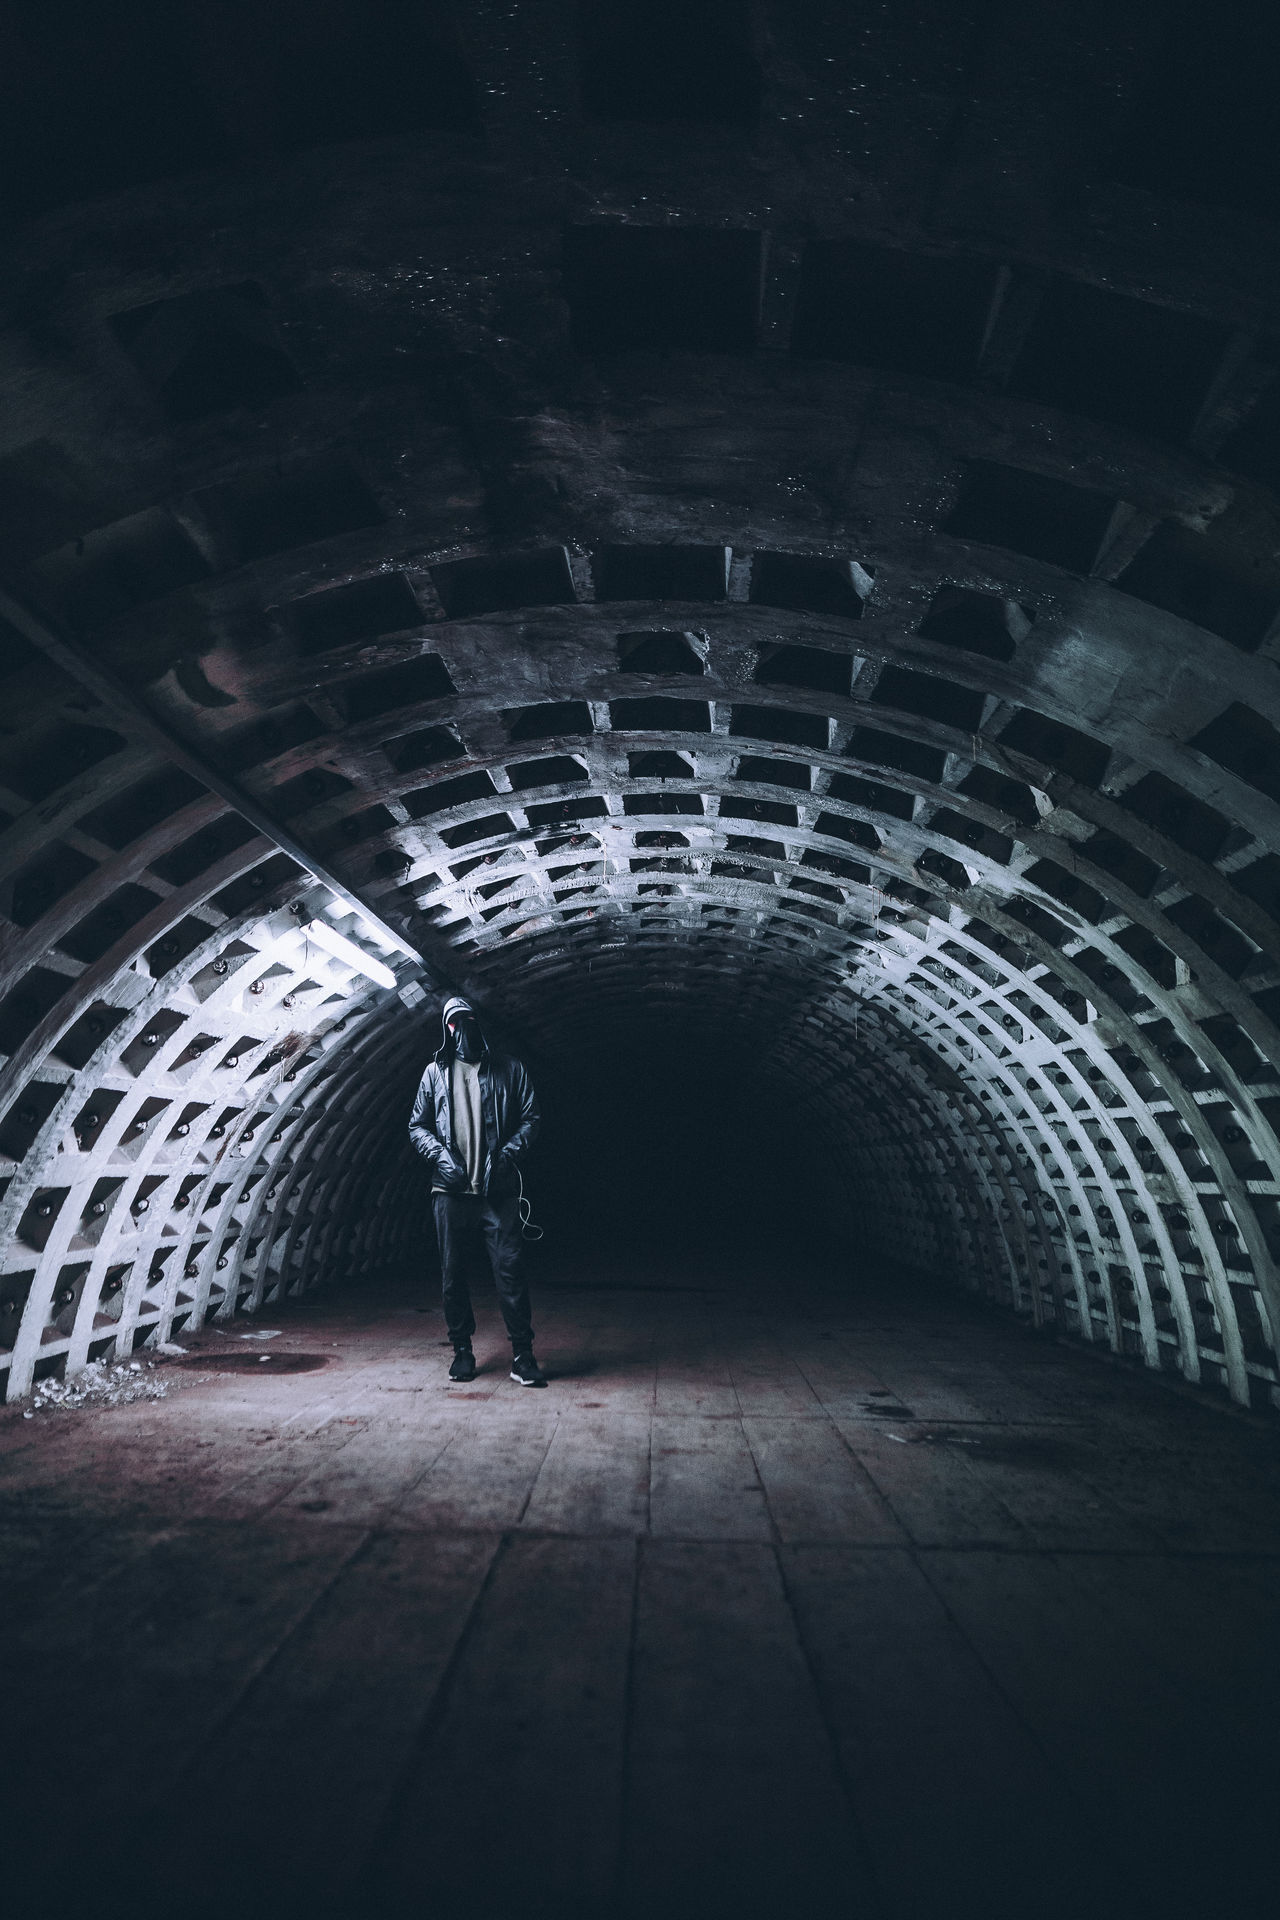 Same old. Arch Architecture Built Structure City City Life Explore Exploring Full Length Illuminated Indoors  Lifestyle Lifestyles Light And Shadow Light At The End Of The Tunnel Mysterious One Person People Real People Standing Tunnel Urban Urban Exploration Urbex